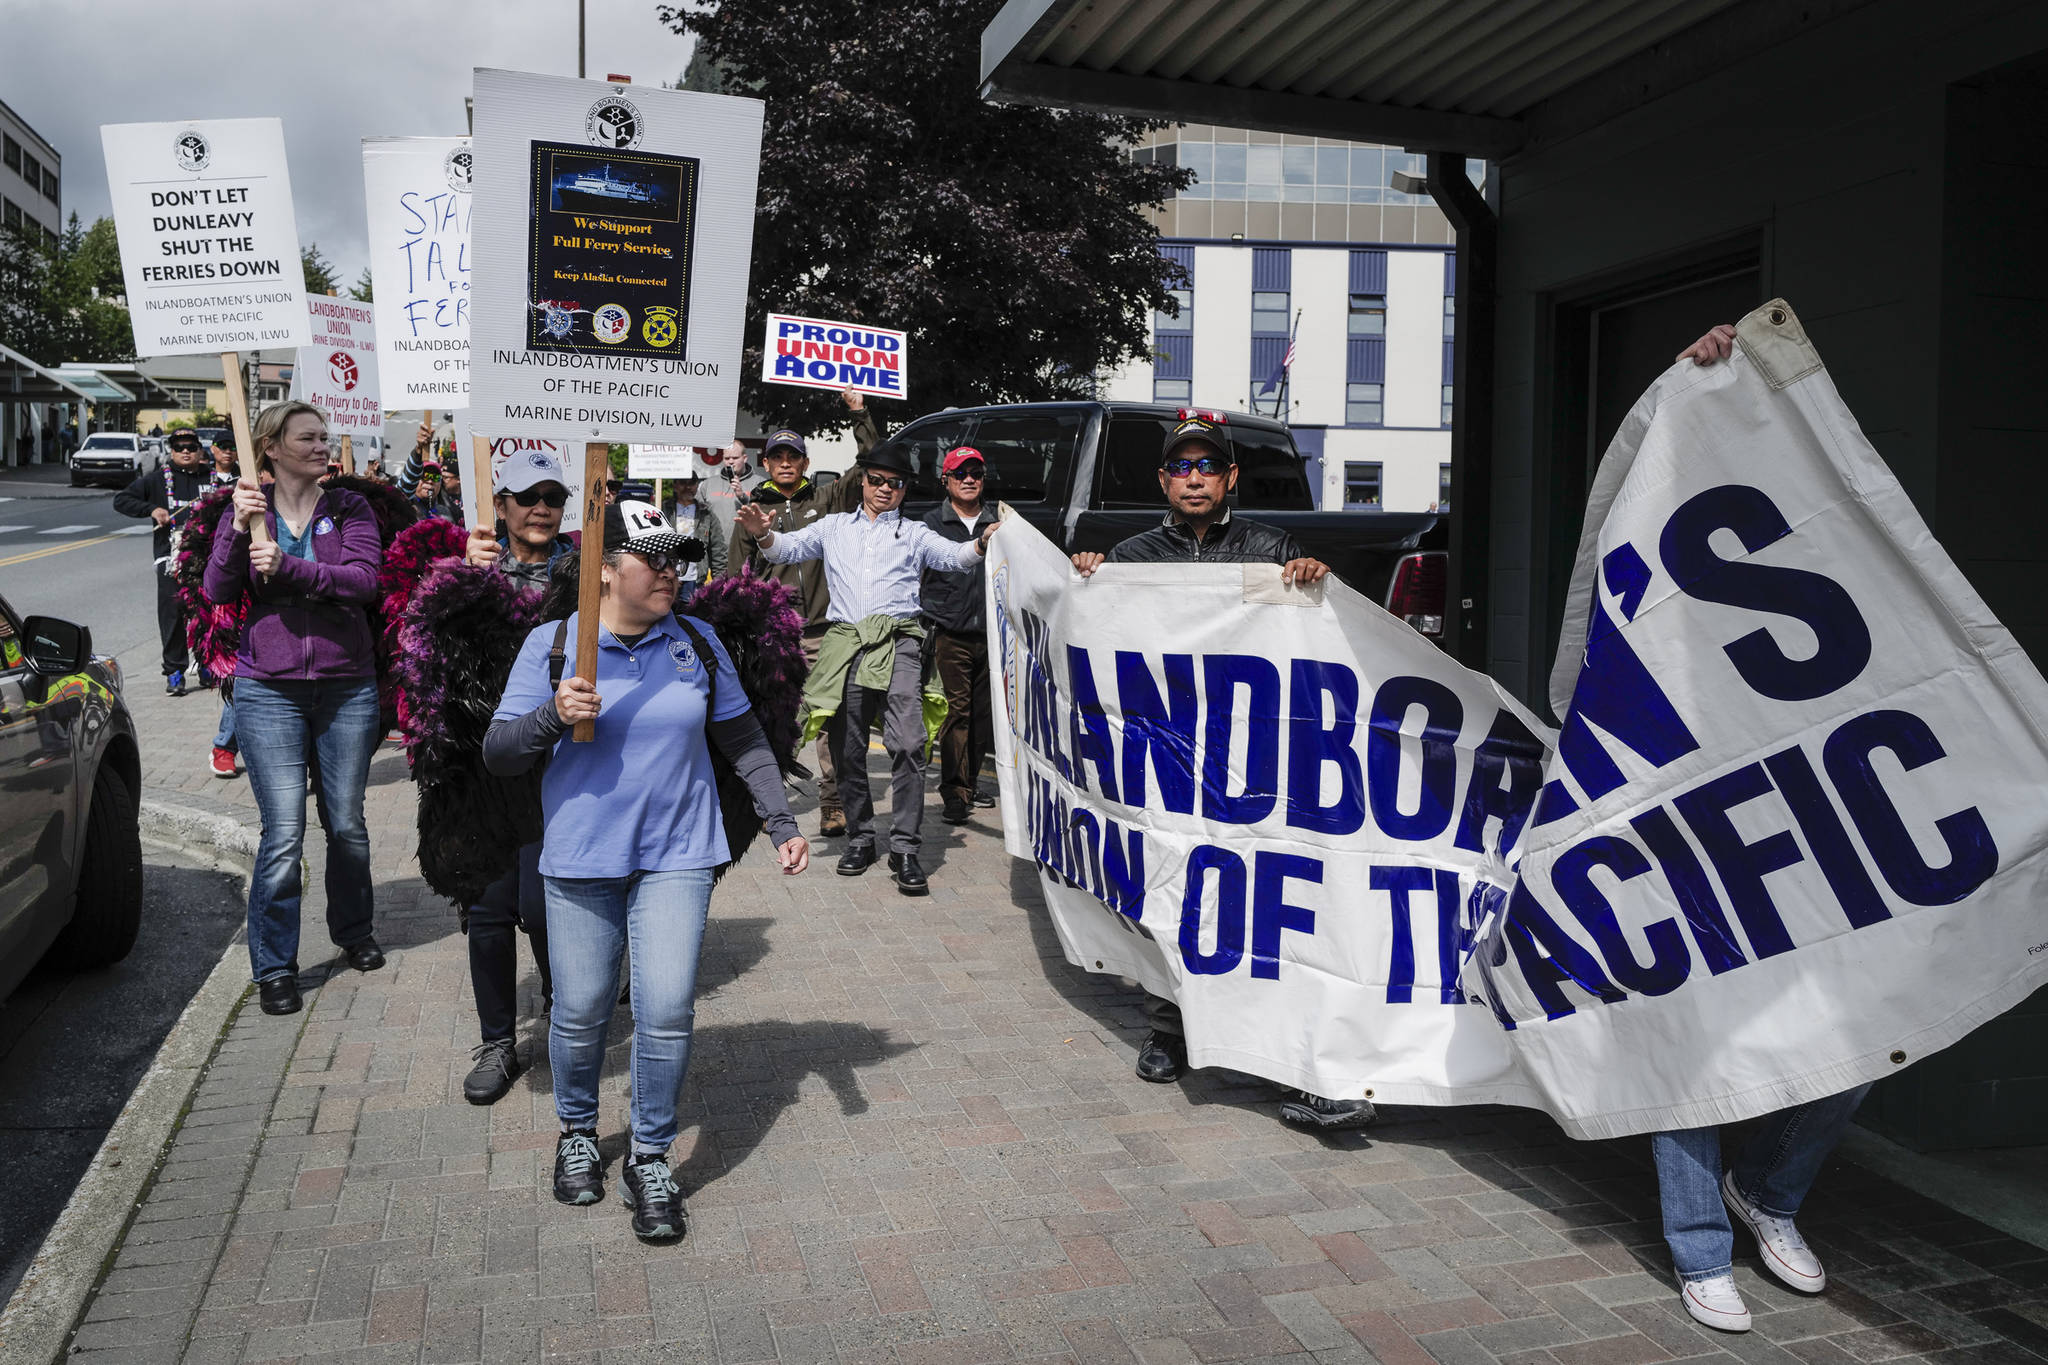 Backed by members of the Juneau Filipino community's Ati-Atihan musical group, members of the Inland Boatmen's Union of the Pacific march along Main Street in support of their continued strike against the Alaska Marine Highway System on Monday, July 29, 2019. (Michael Penn | Juneau Empire)